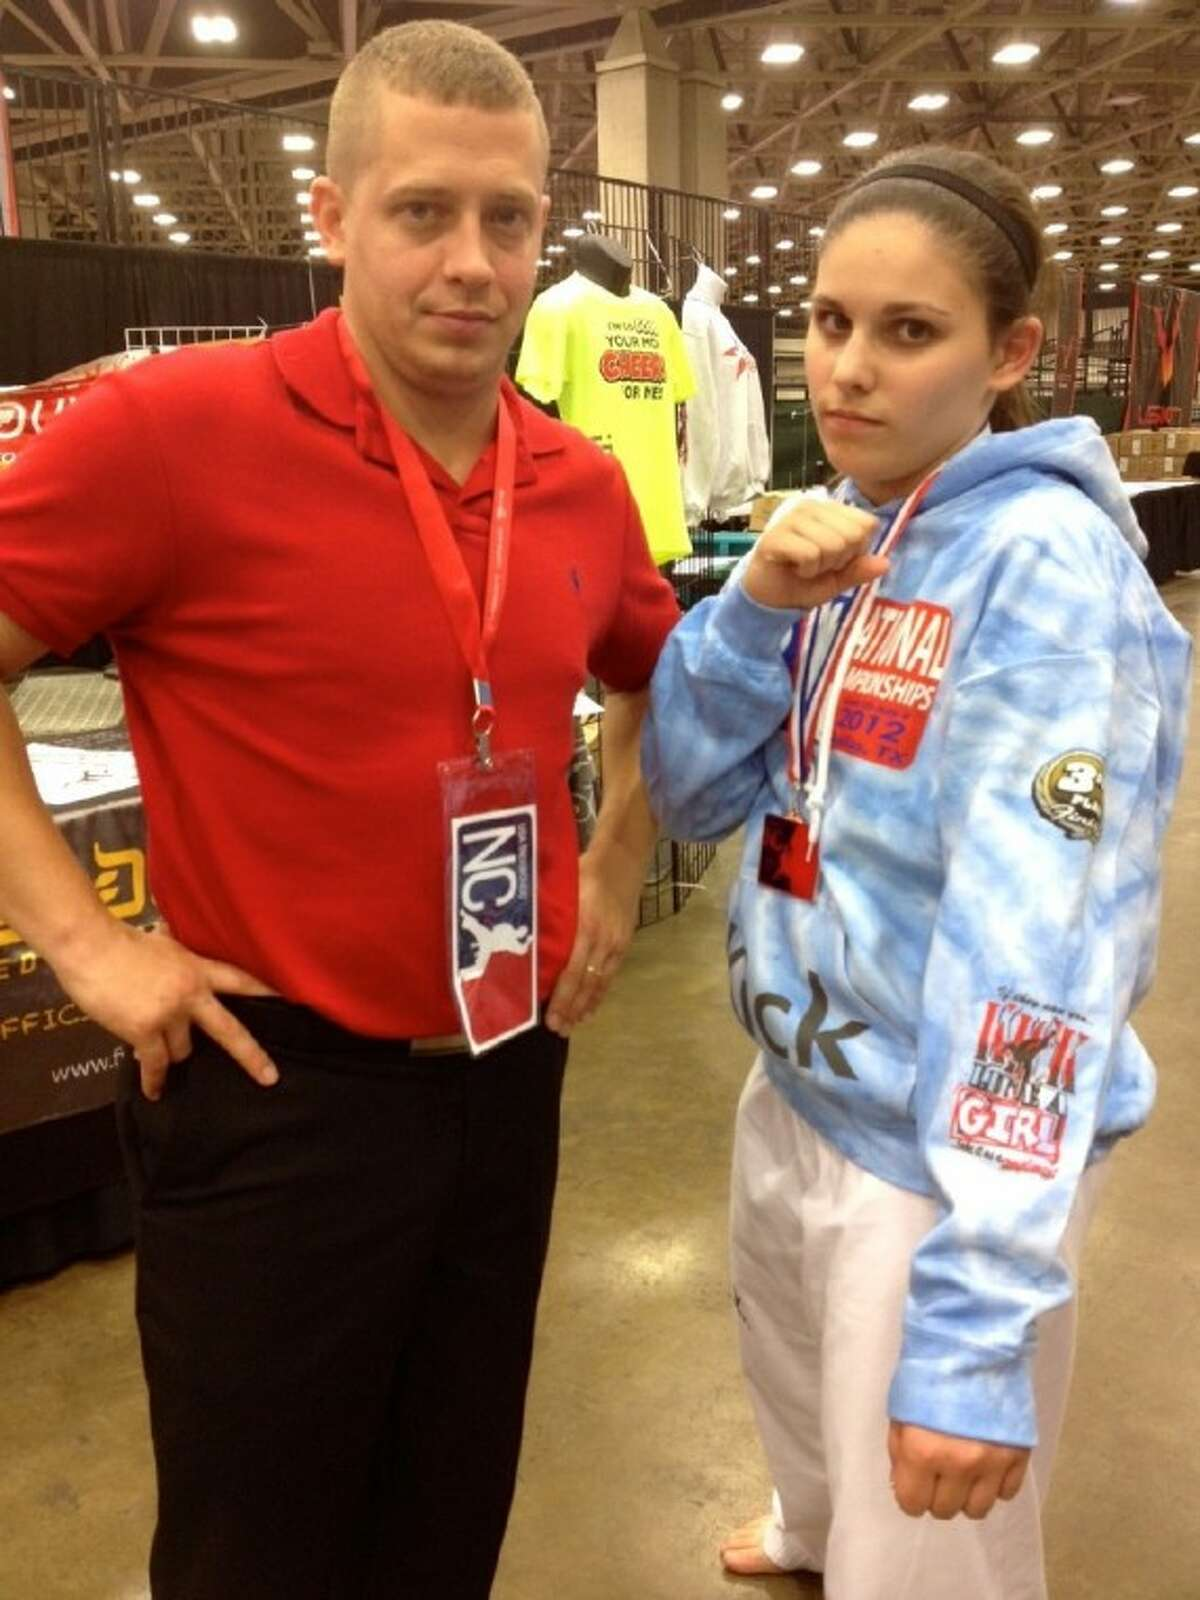 Julia Glandt, eighth grader at McCullough High School, poses with Taekwondo coach Bill Gibbs after receiving bronze in sparring at the USAT National Championships in July in Dallas.